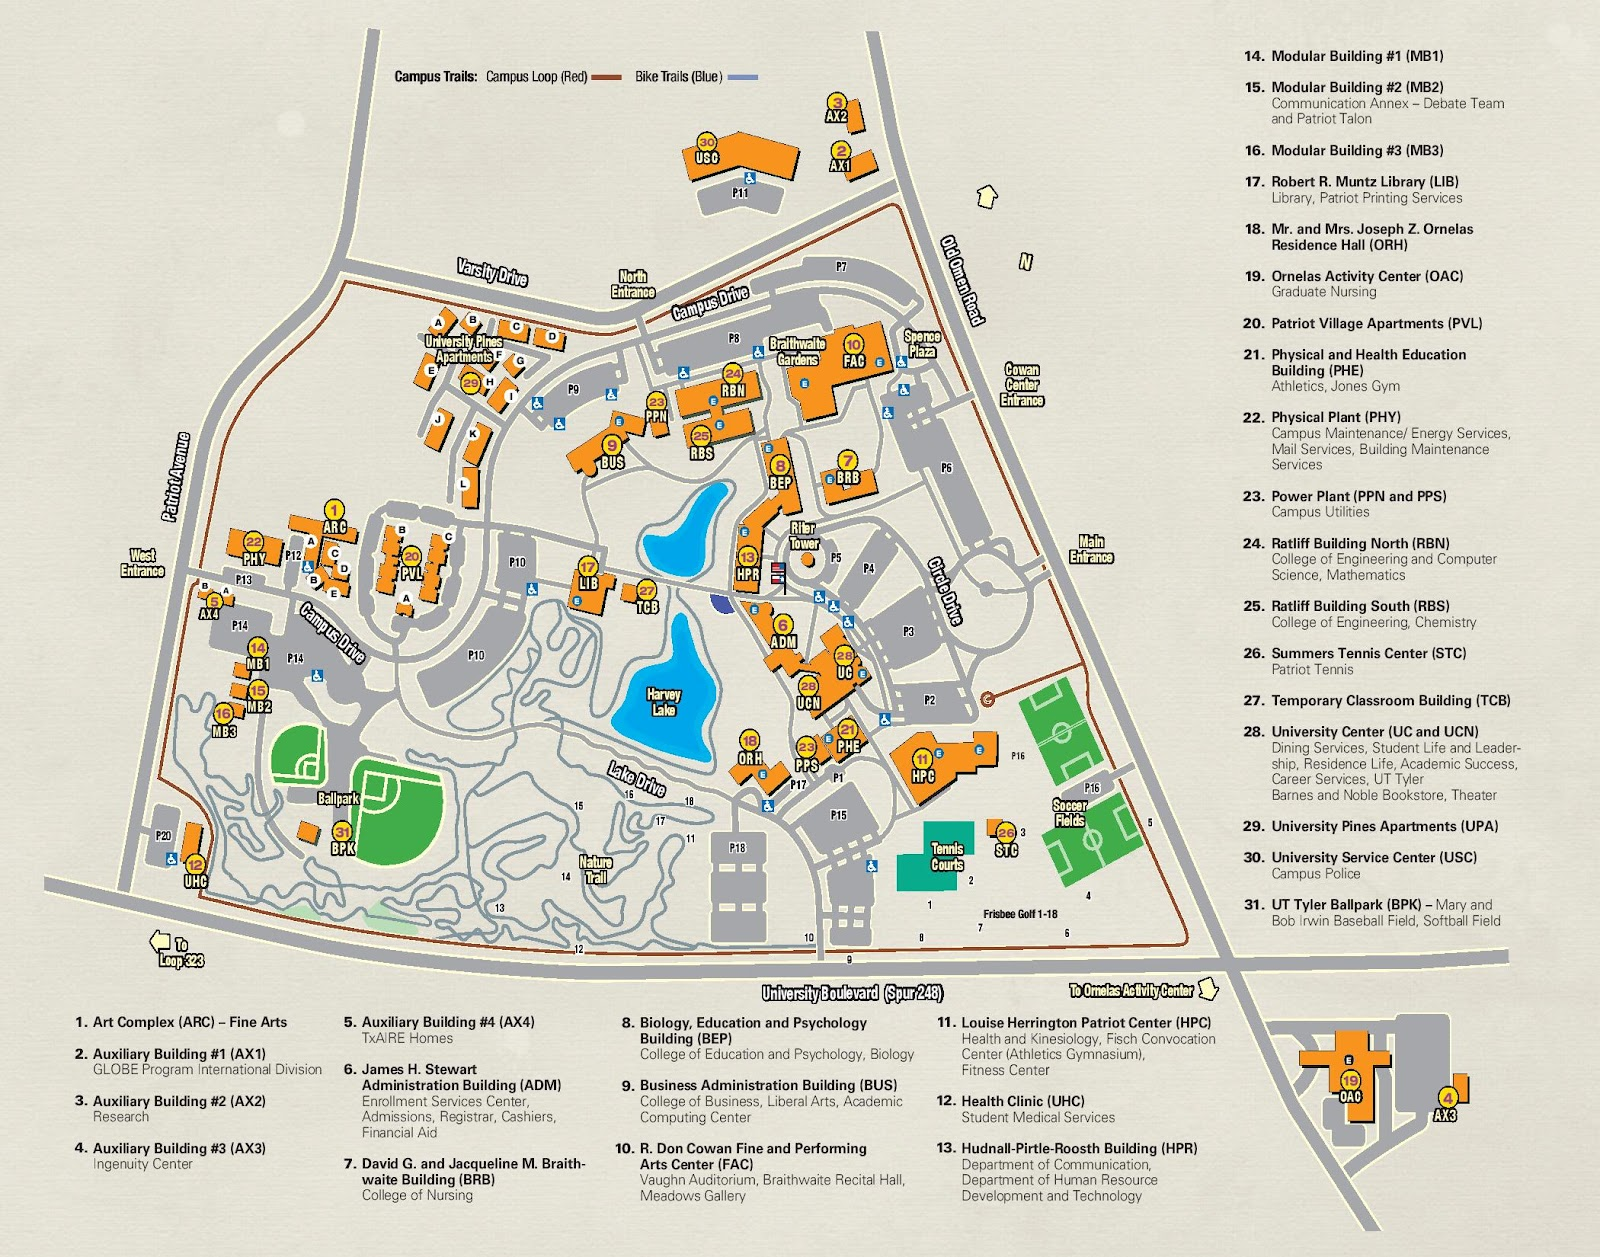 The UT Tyler Student Blog: Updates on Parking Issue